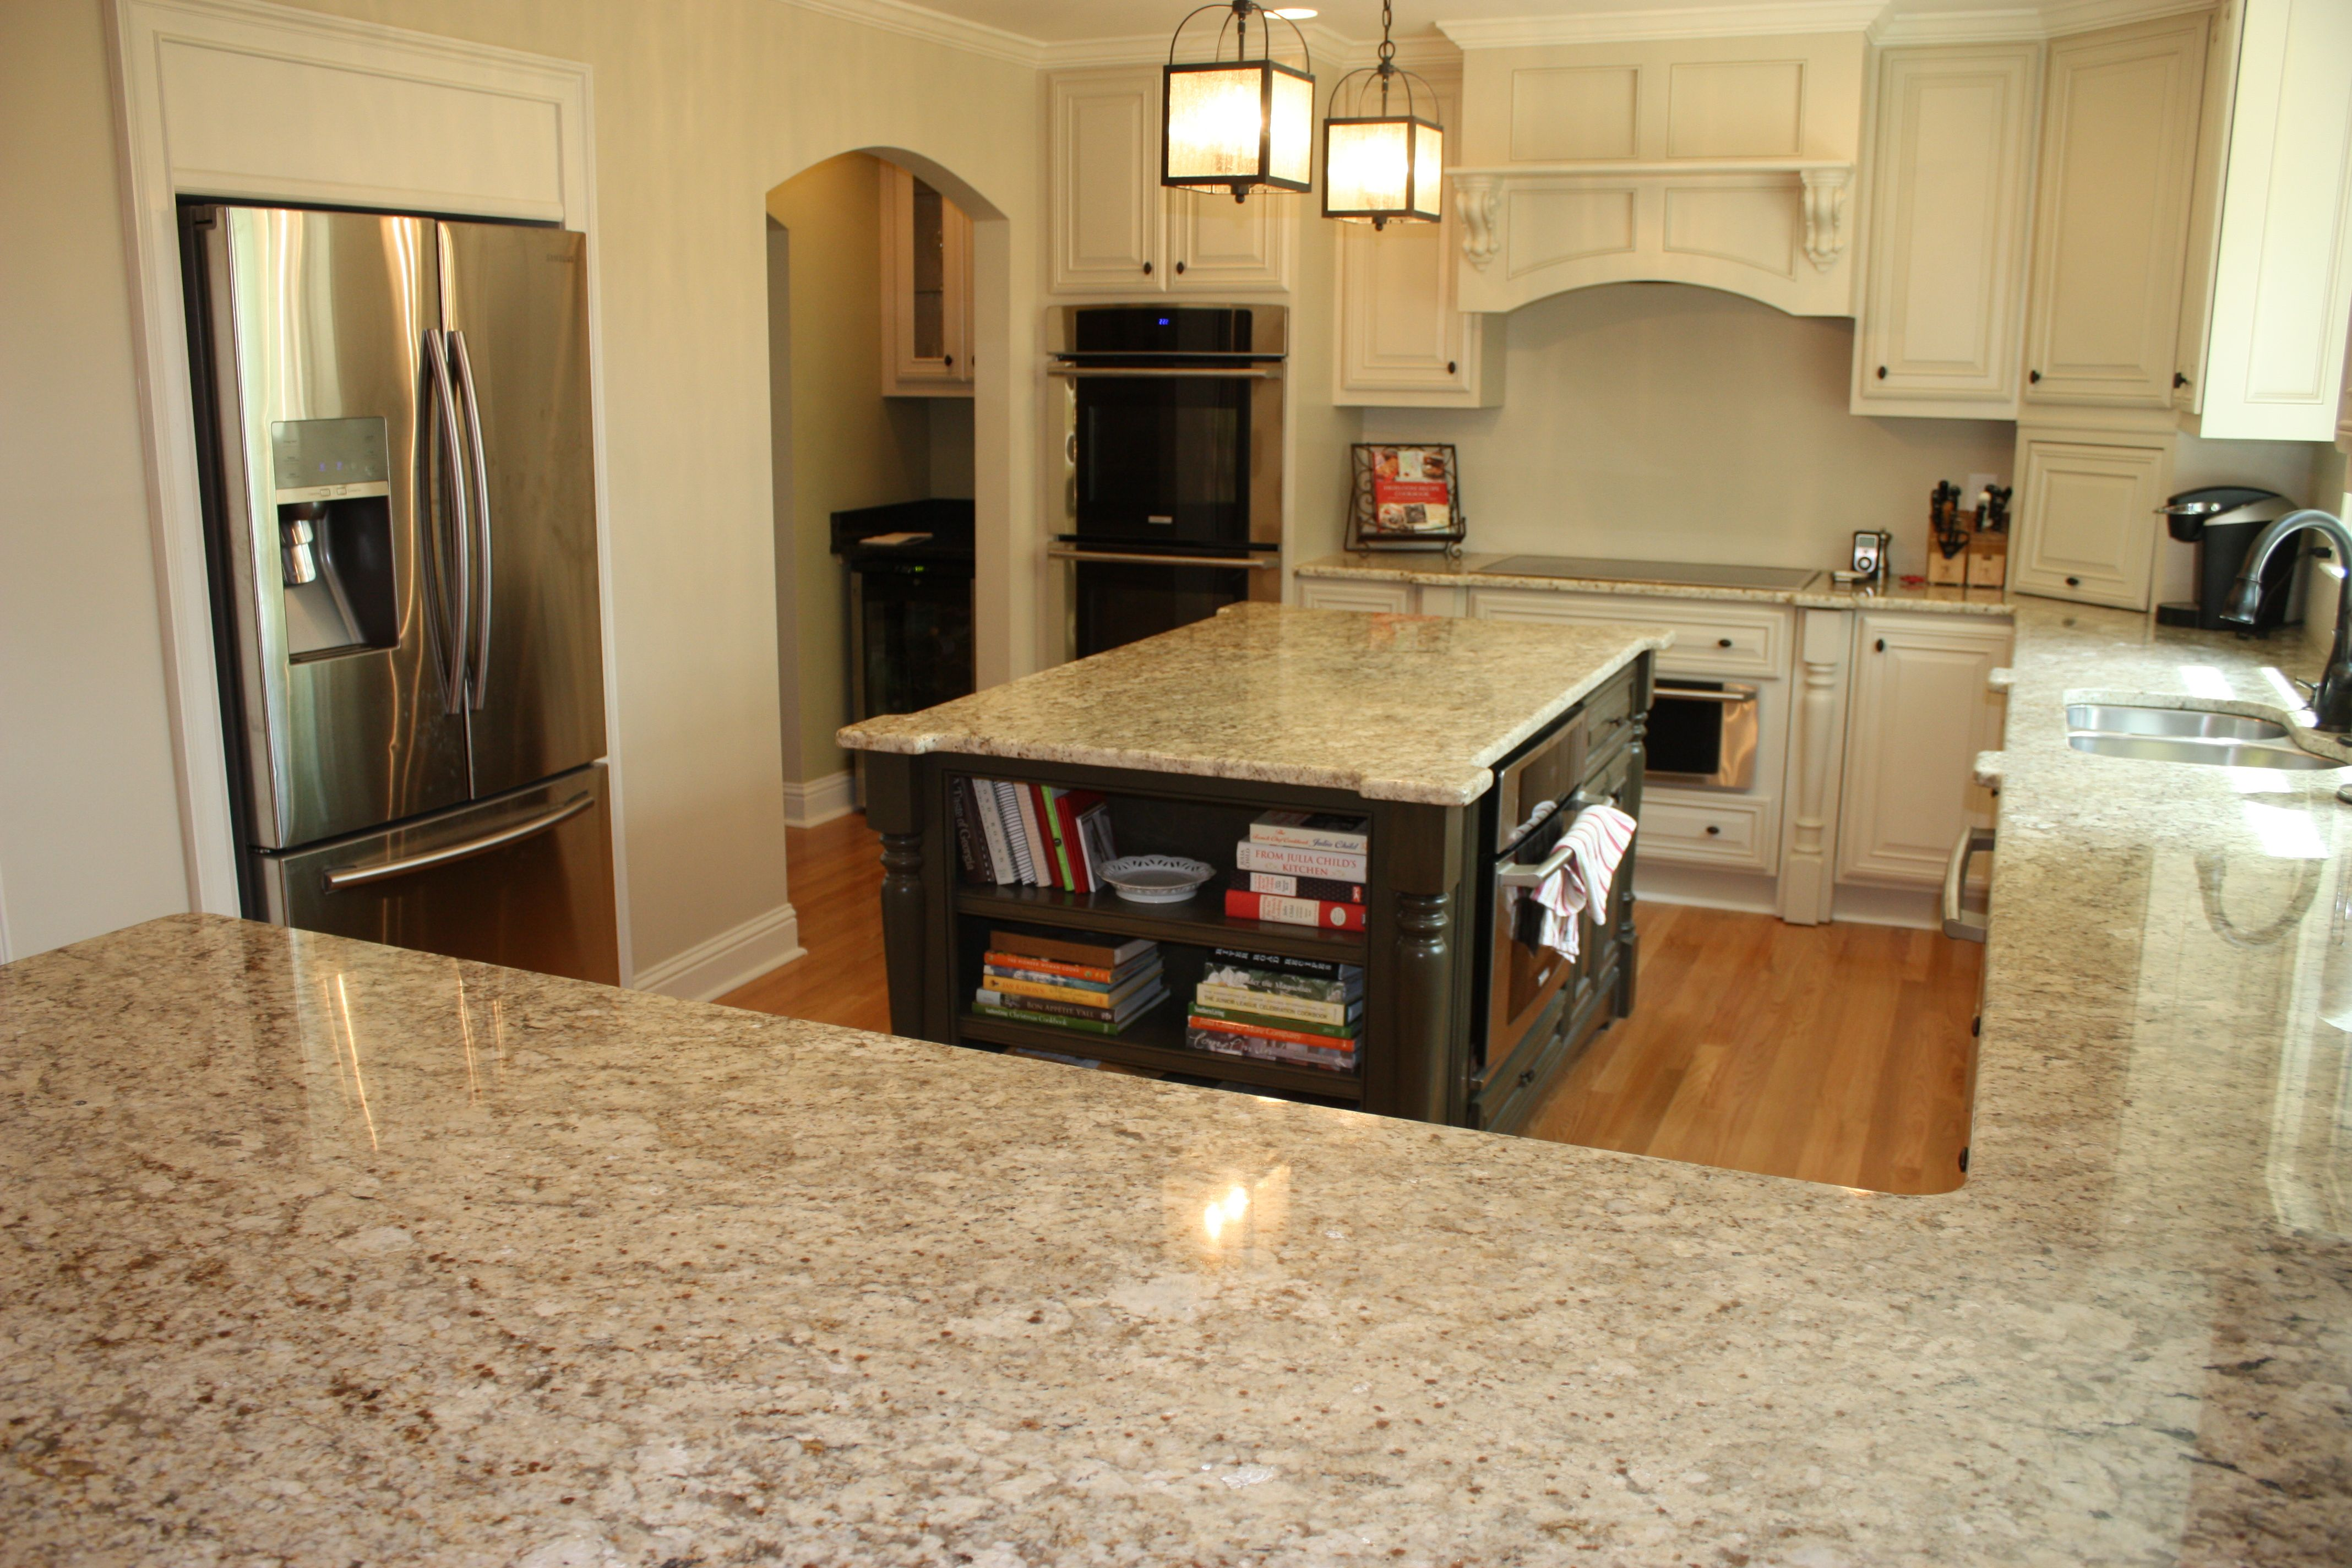 Superieur Beautiful Kitchen Renovation Using Hawaii Granite In The Kitchen And Uba  Tuba In The Butlers Pantry